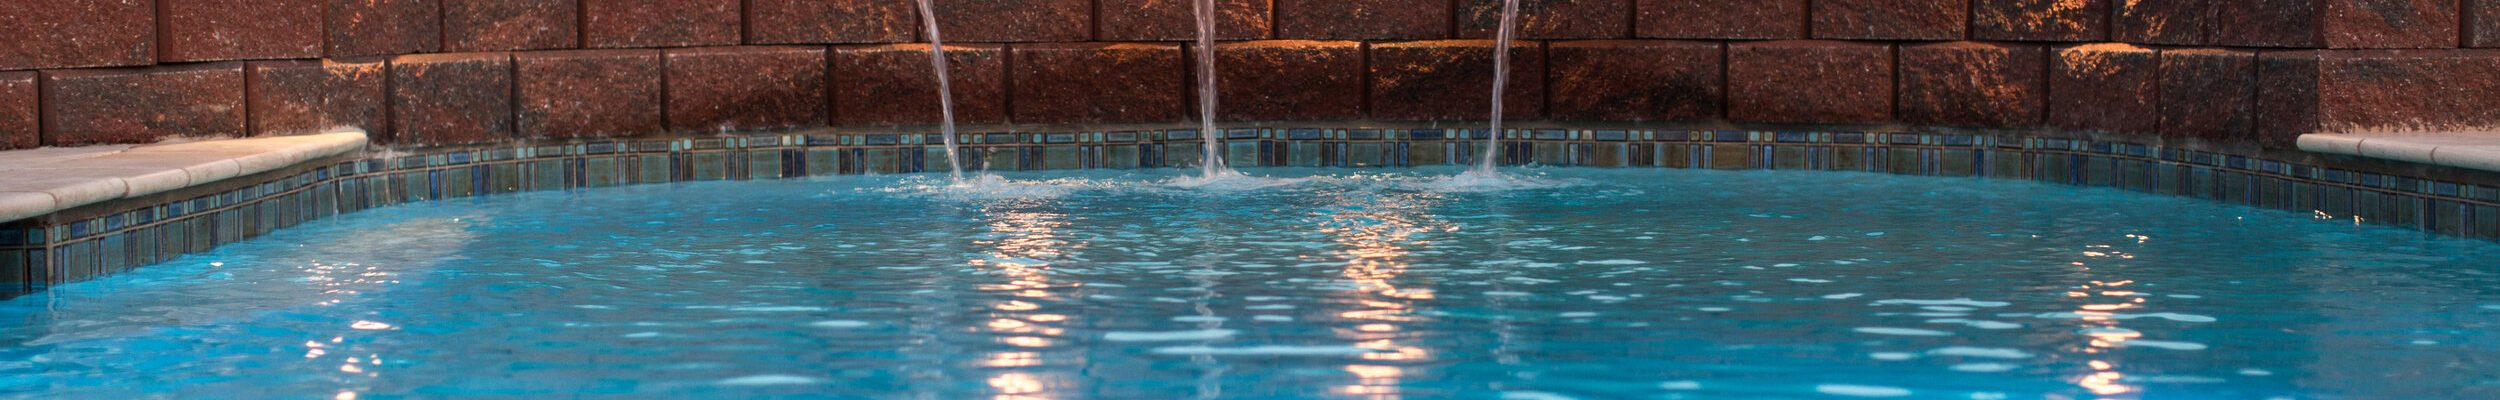 View More: http://ketphotography.pass.us/spartan-pools-high-resolution